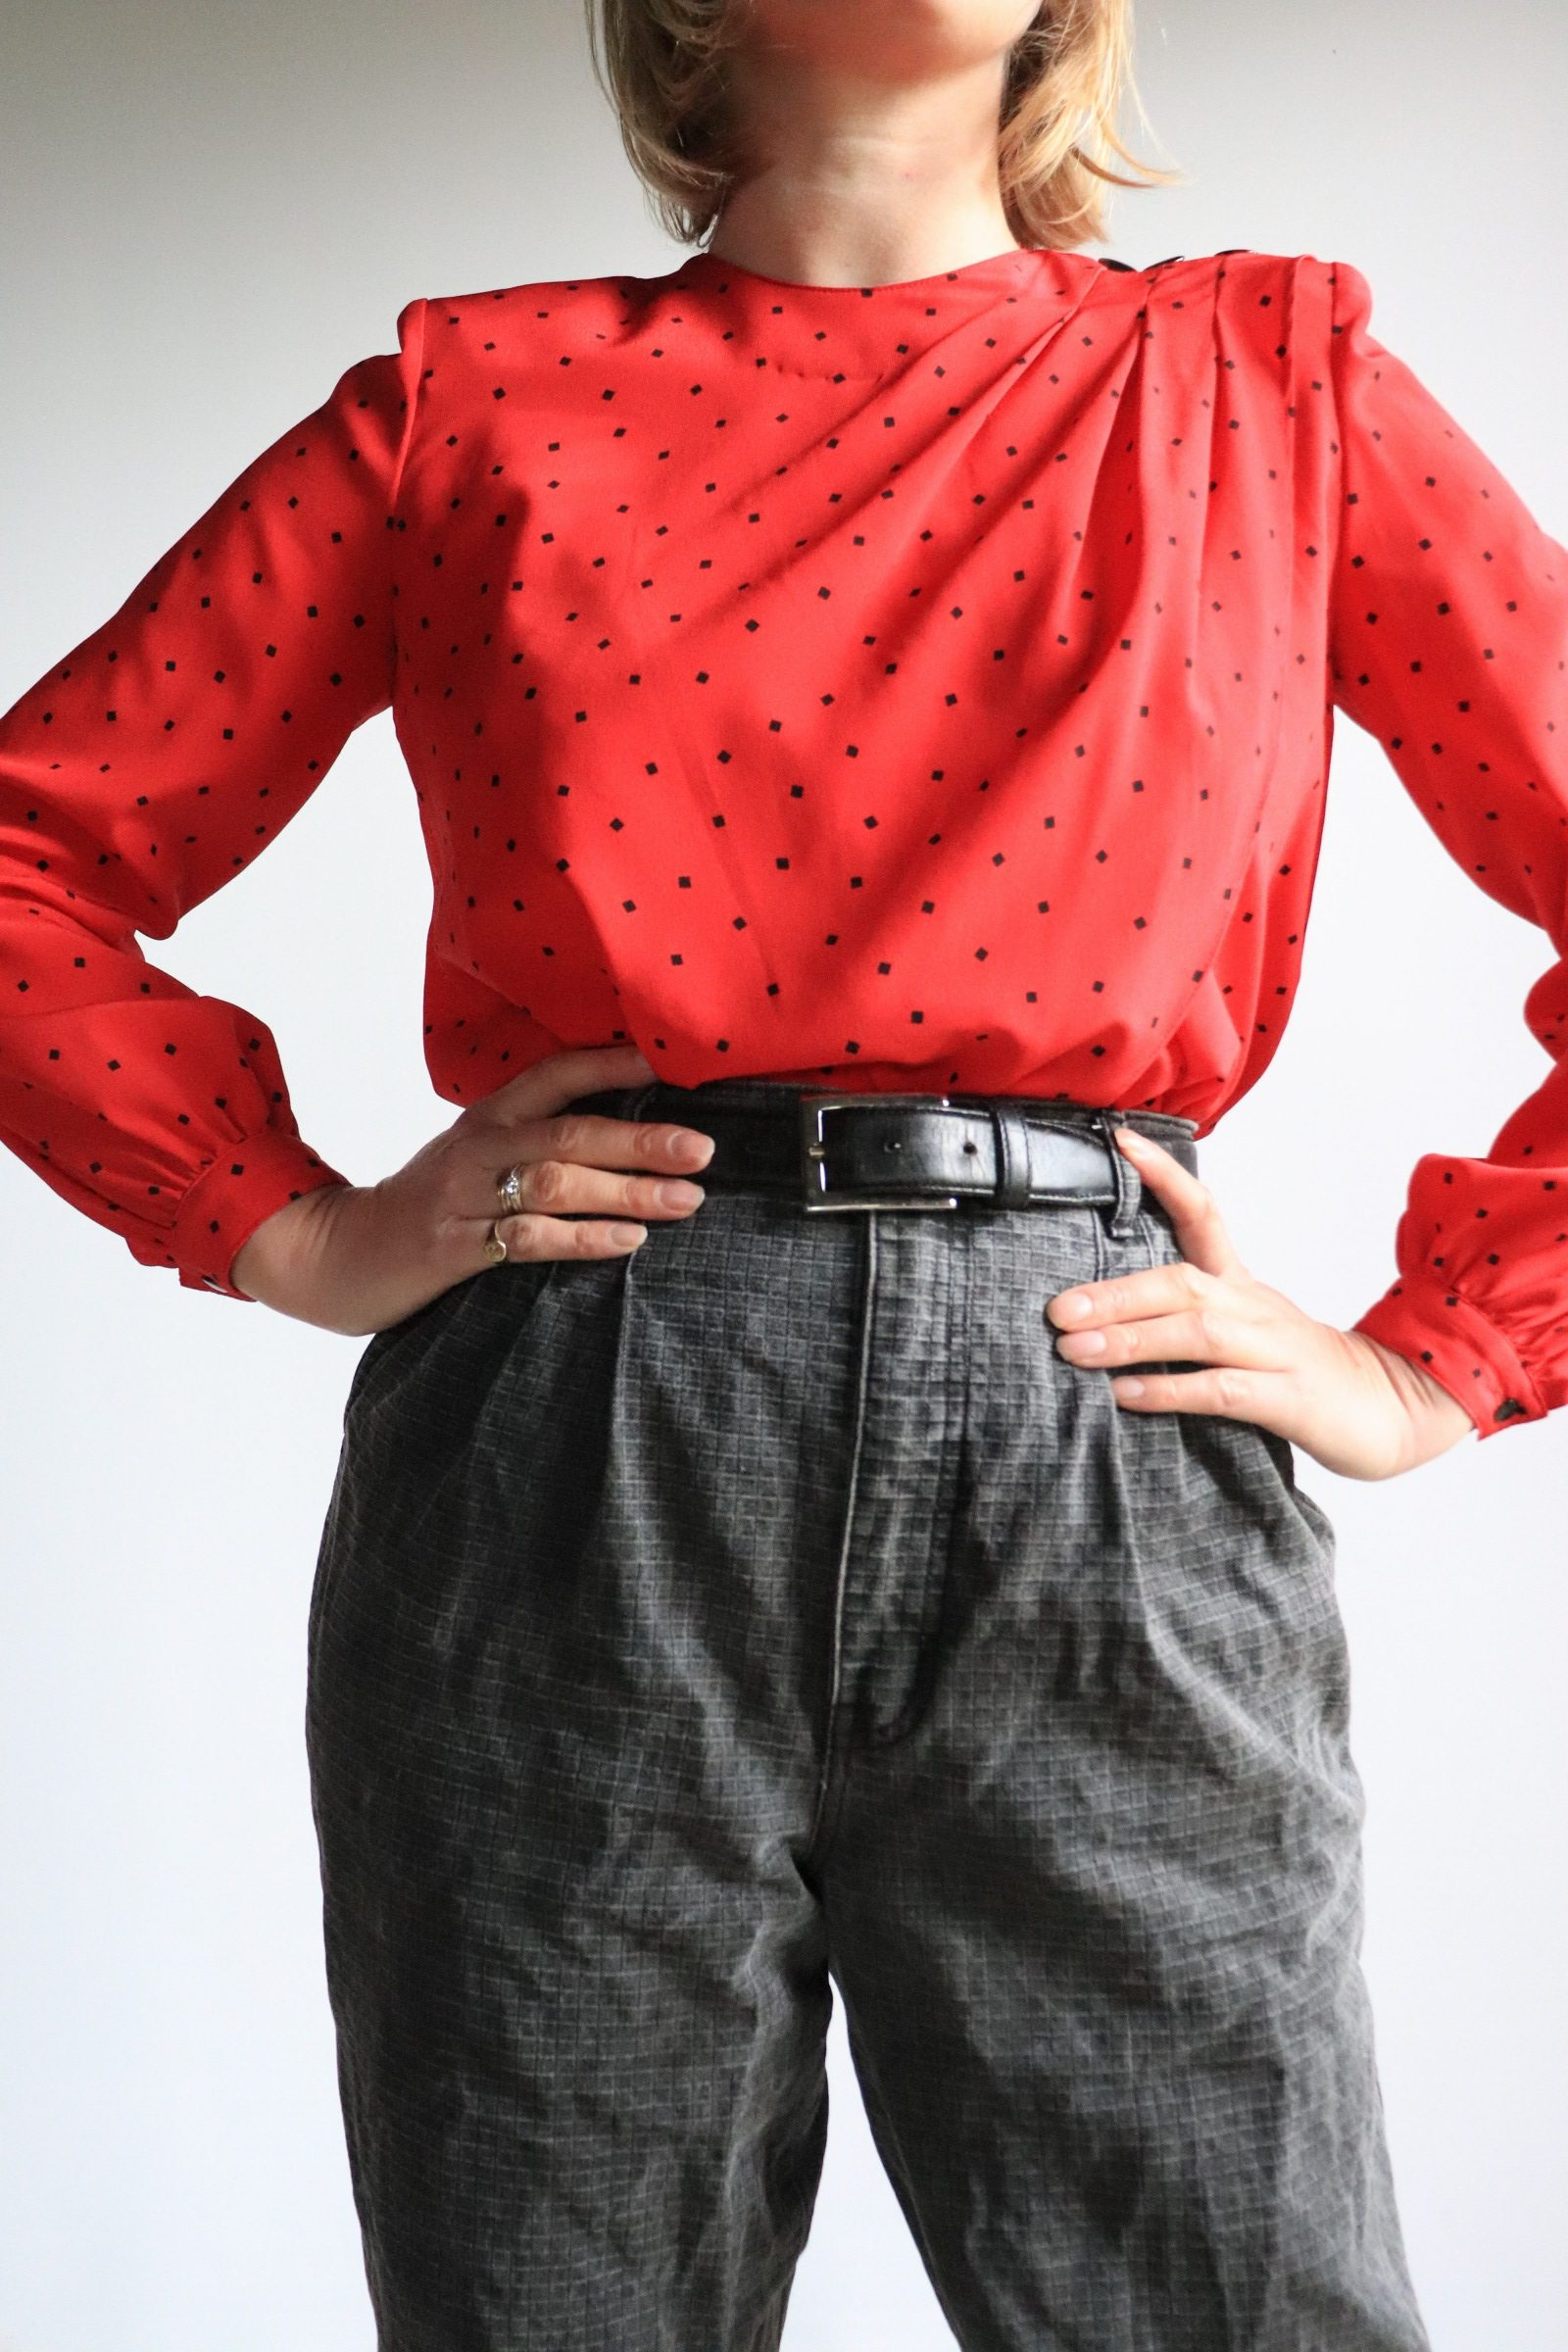 80s red blouse with polka dots